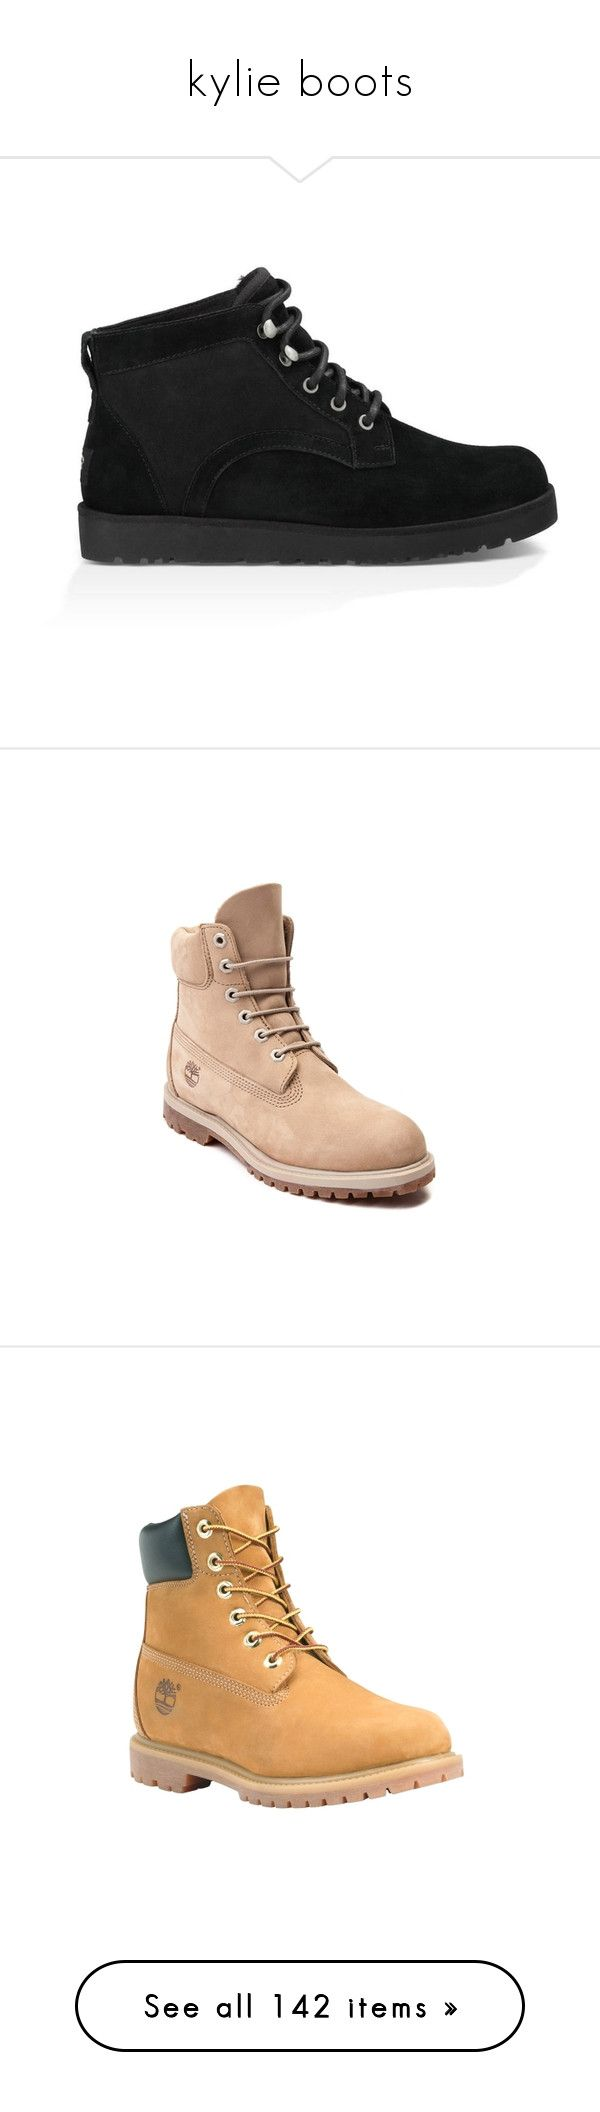 """""""kylie boots"""" by marilia13 ❤ liked on Polyvore featuring shoes, boots, sheeps boots, light weight shoes, sheepskin shoes, slim shoes, ugg australia boots, timberland shoes, timberland boots and timberland footwear"""